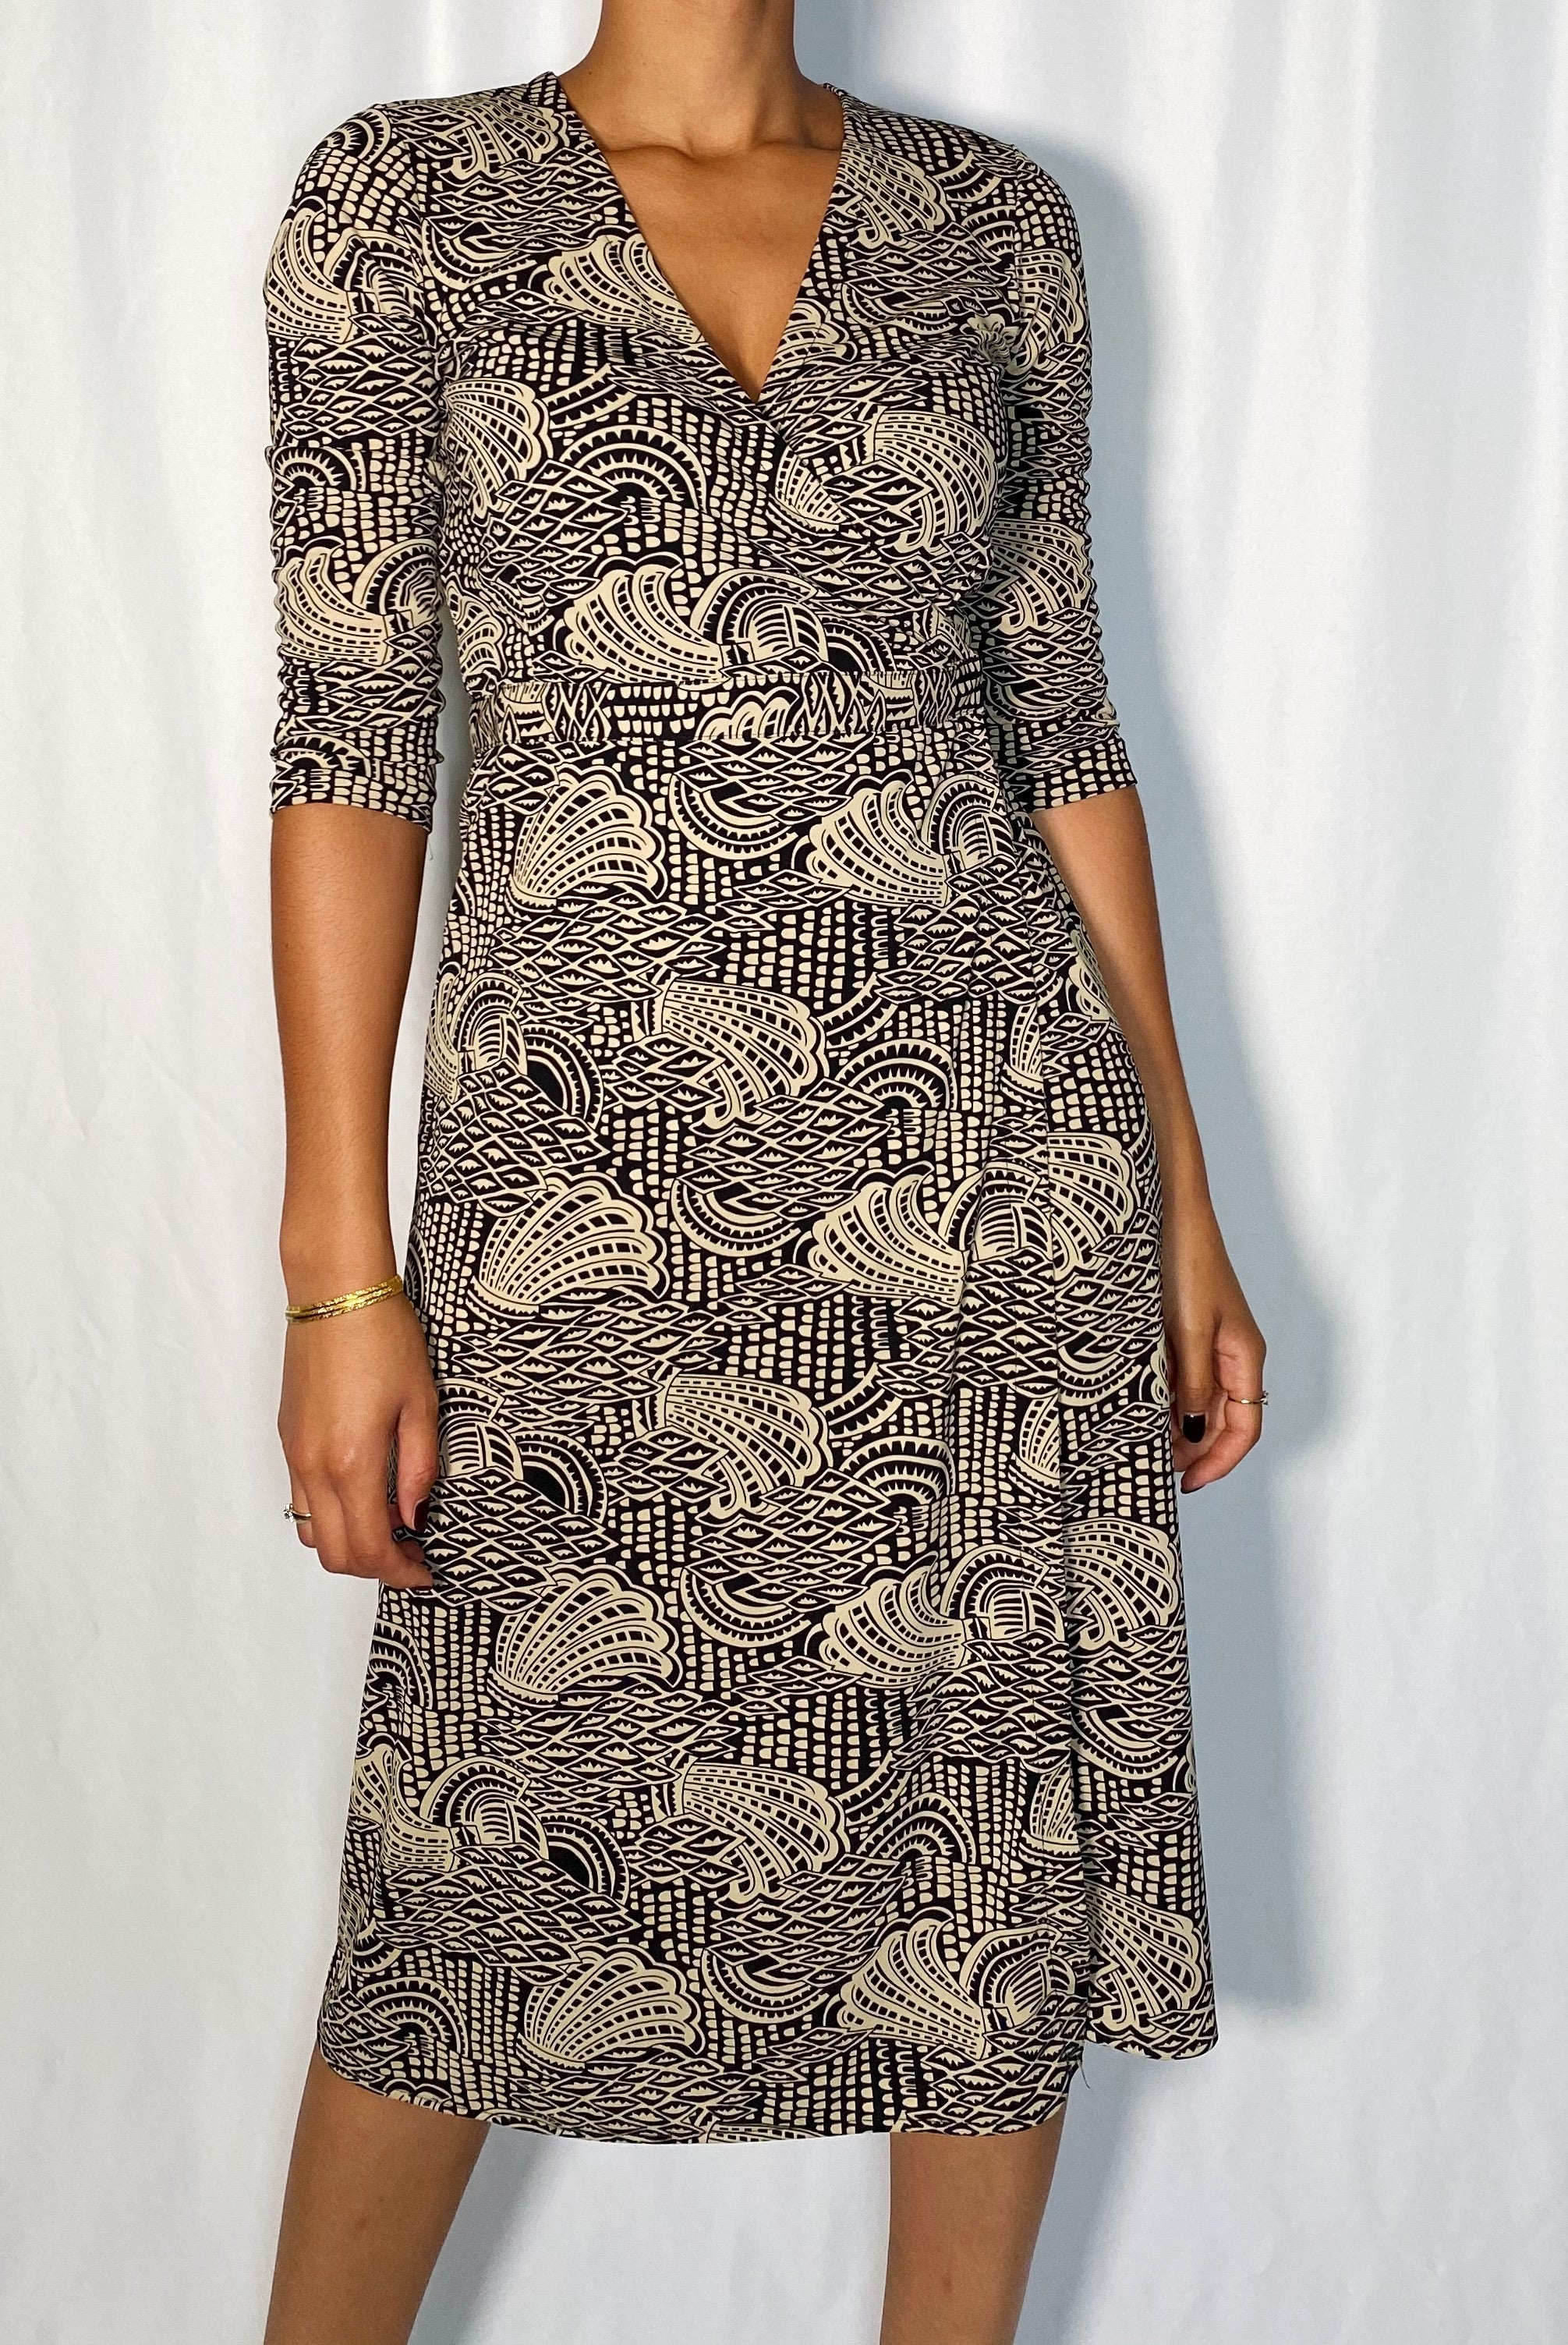 Vintage Nine West Wrap Midi Dress (size small)